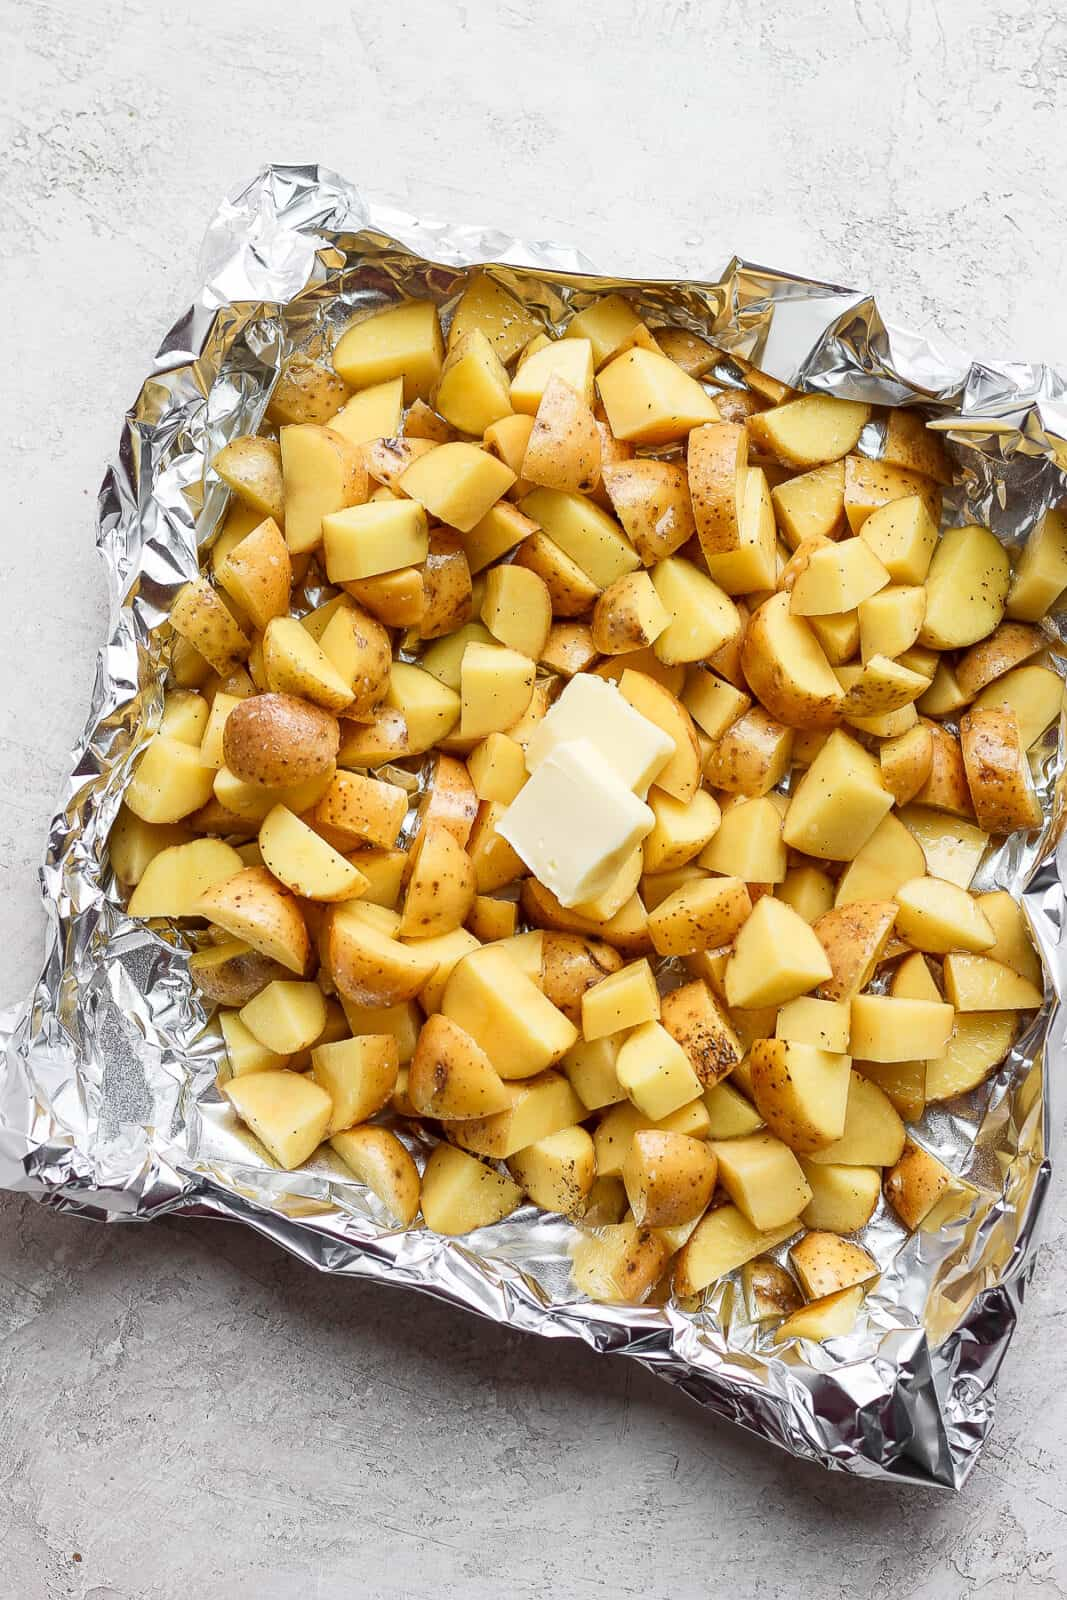 Cut up potatoes in a foil boat with oil, salt, pepper, and butter on top.